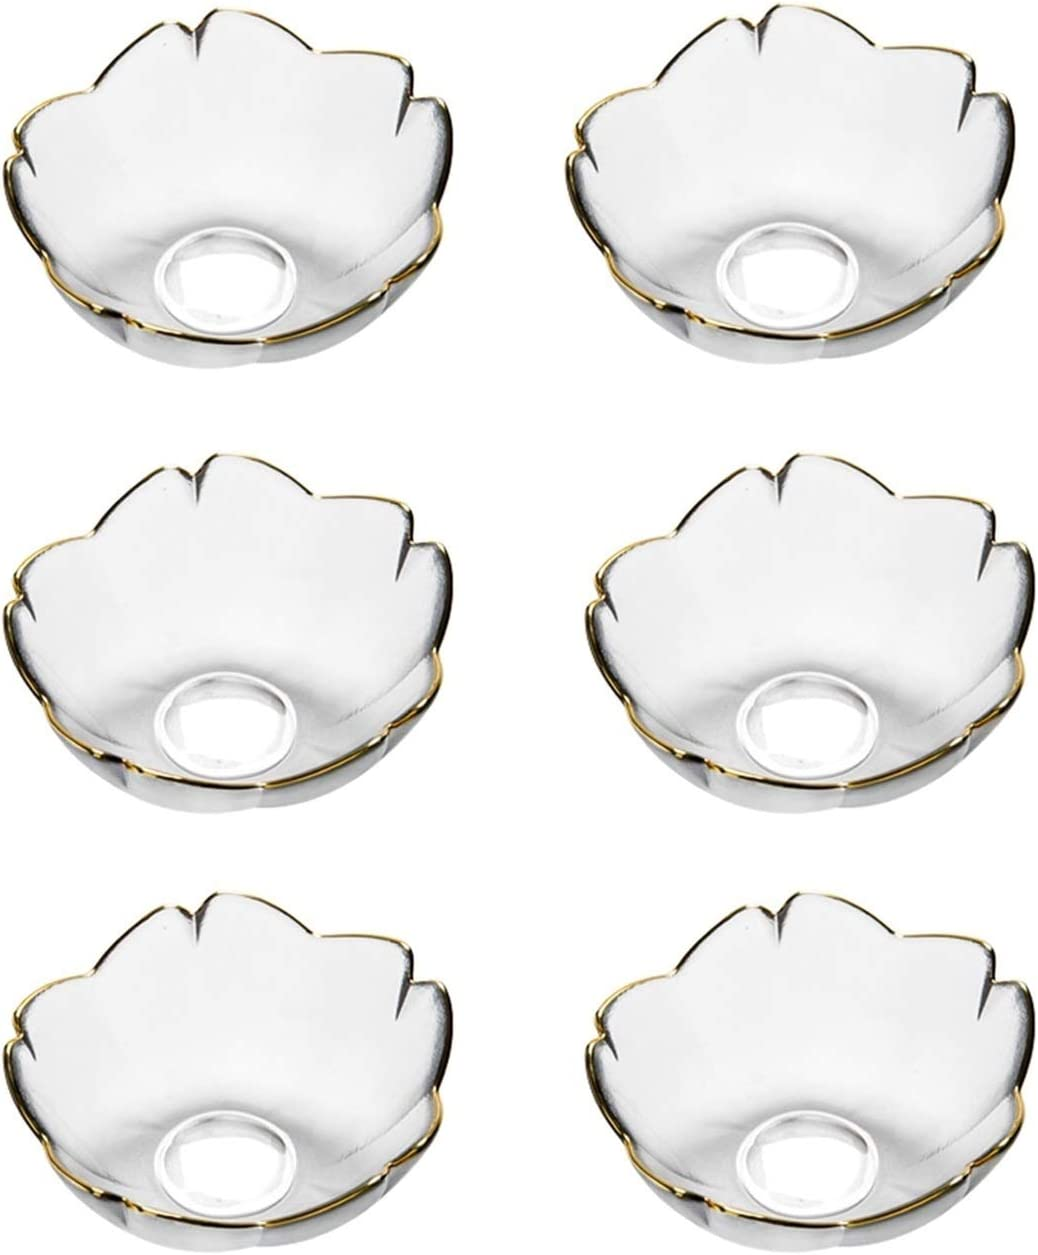 Sauce Dish Dip Max 53% OFF Popularity Bowls Stylish S Glass Multipurpose Dipping Design